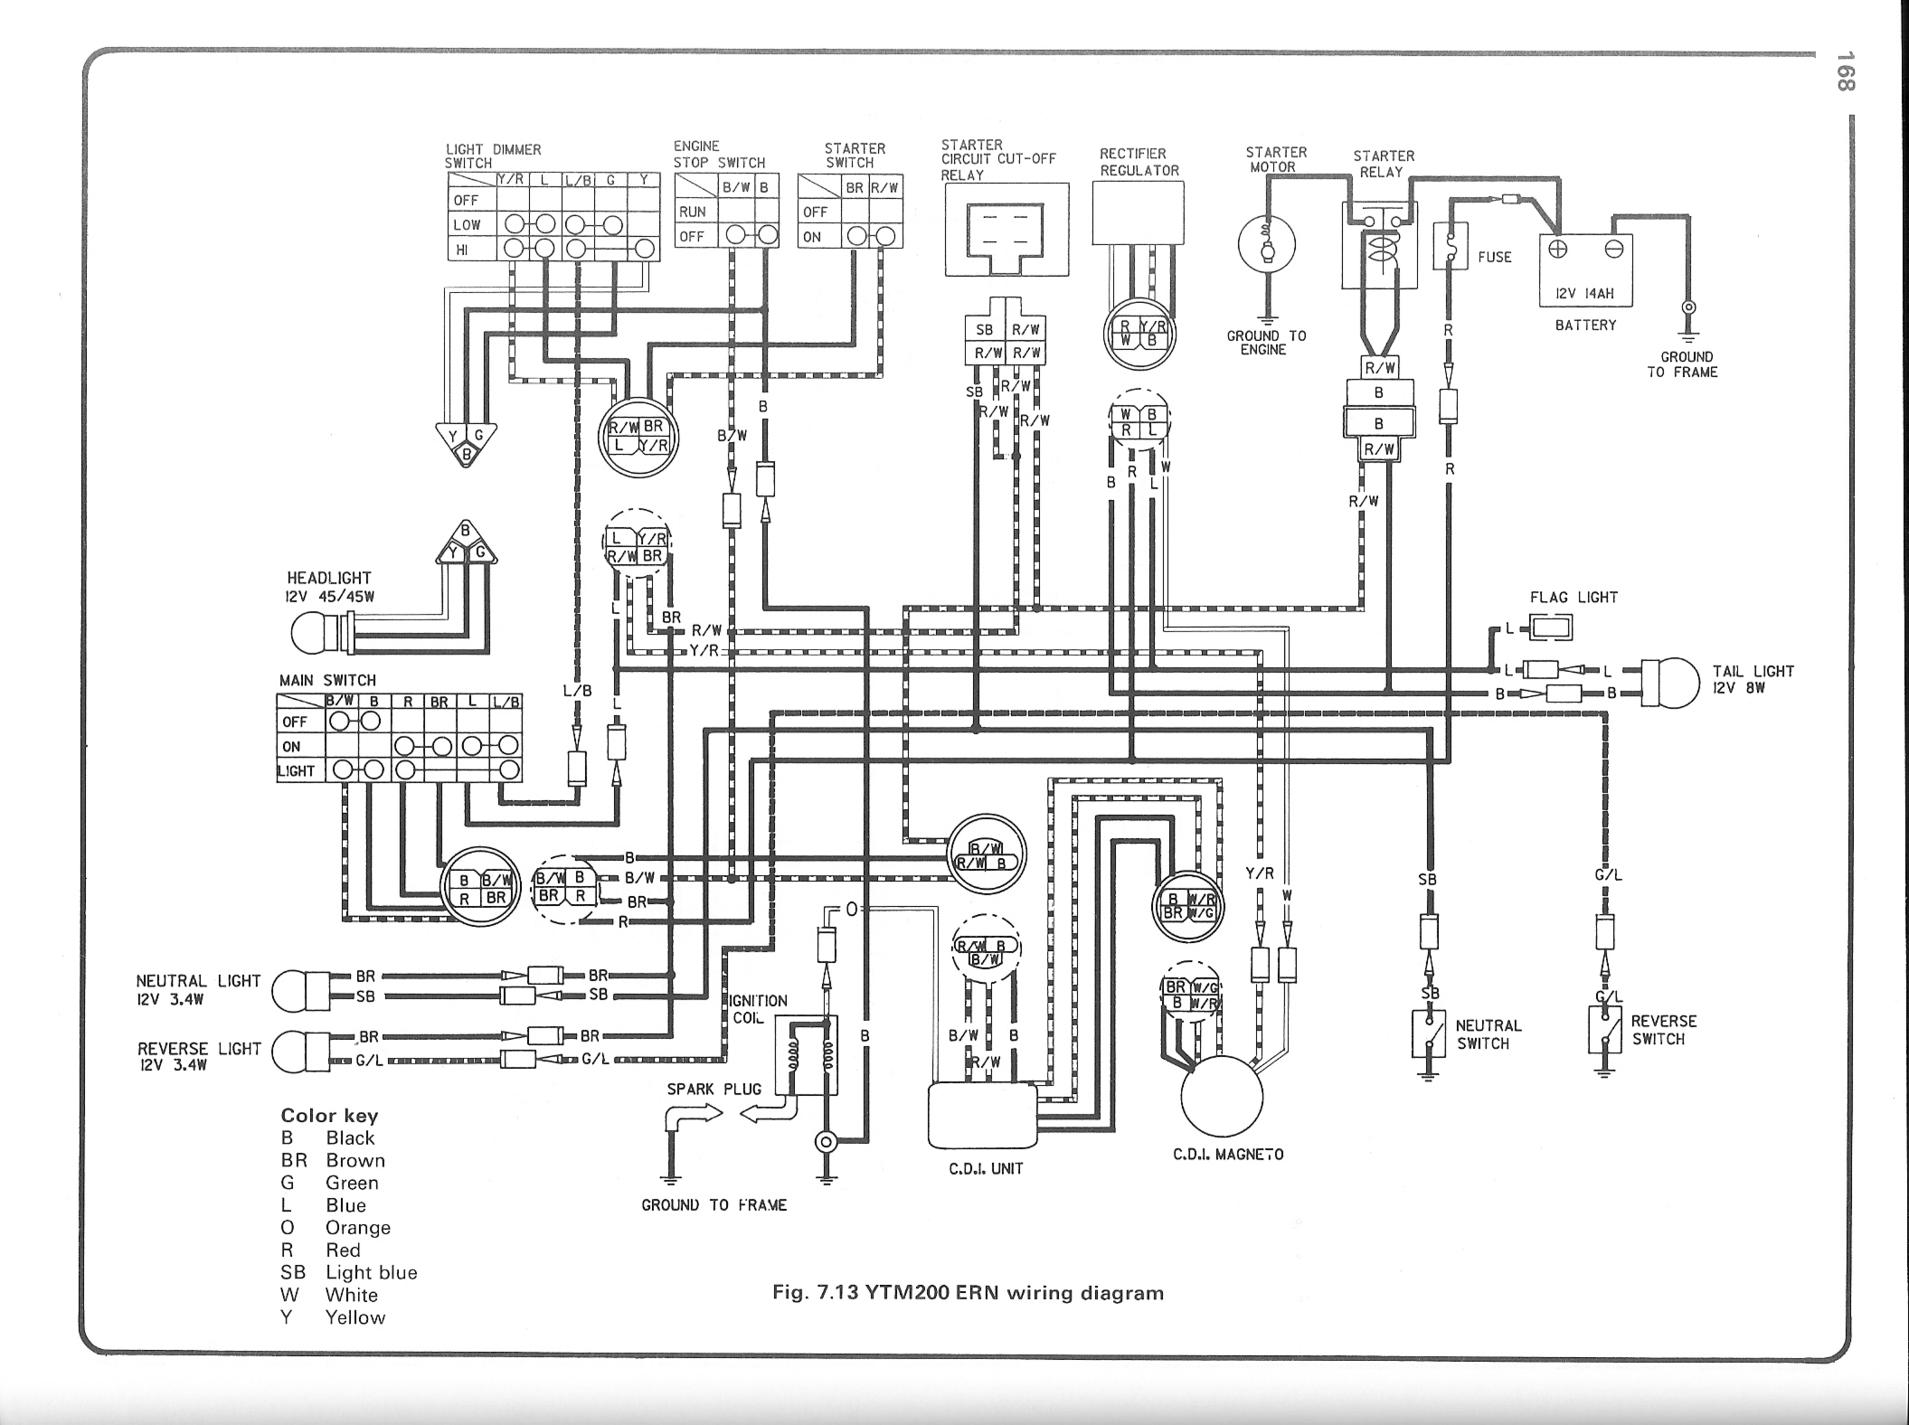 3wheeler world - yamaha ytm200ern three-wheeler wiring diagram yamaha xt 200 wiring diagram yamaha blaster 200 wiring diagram